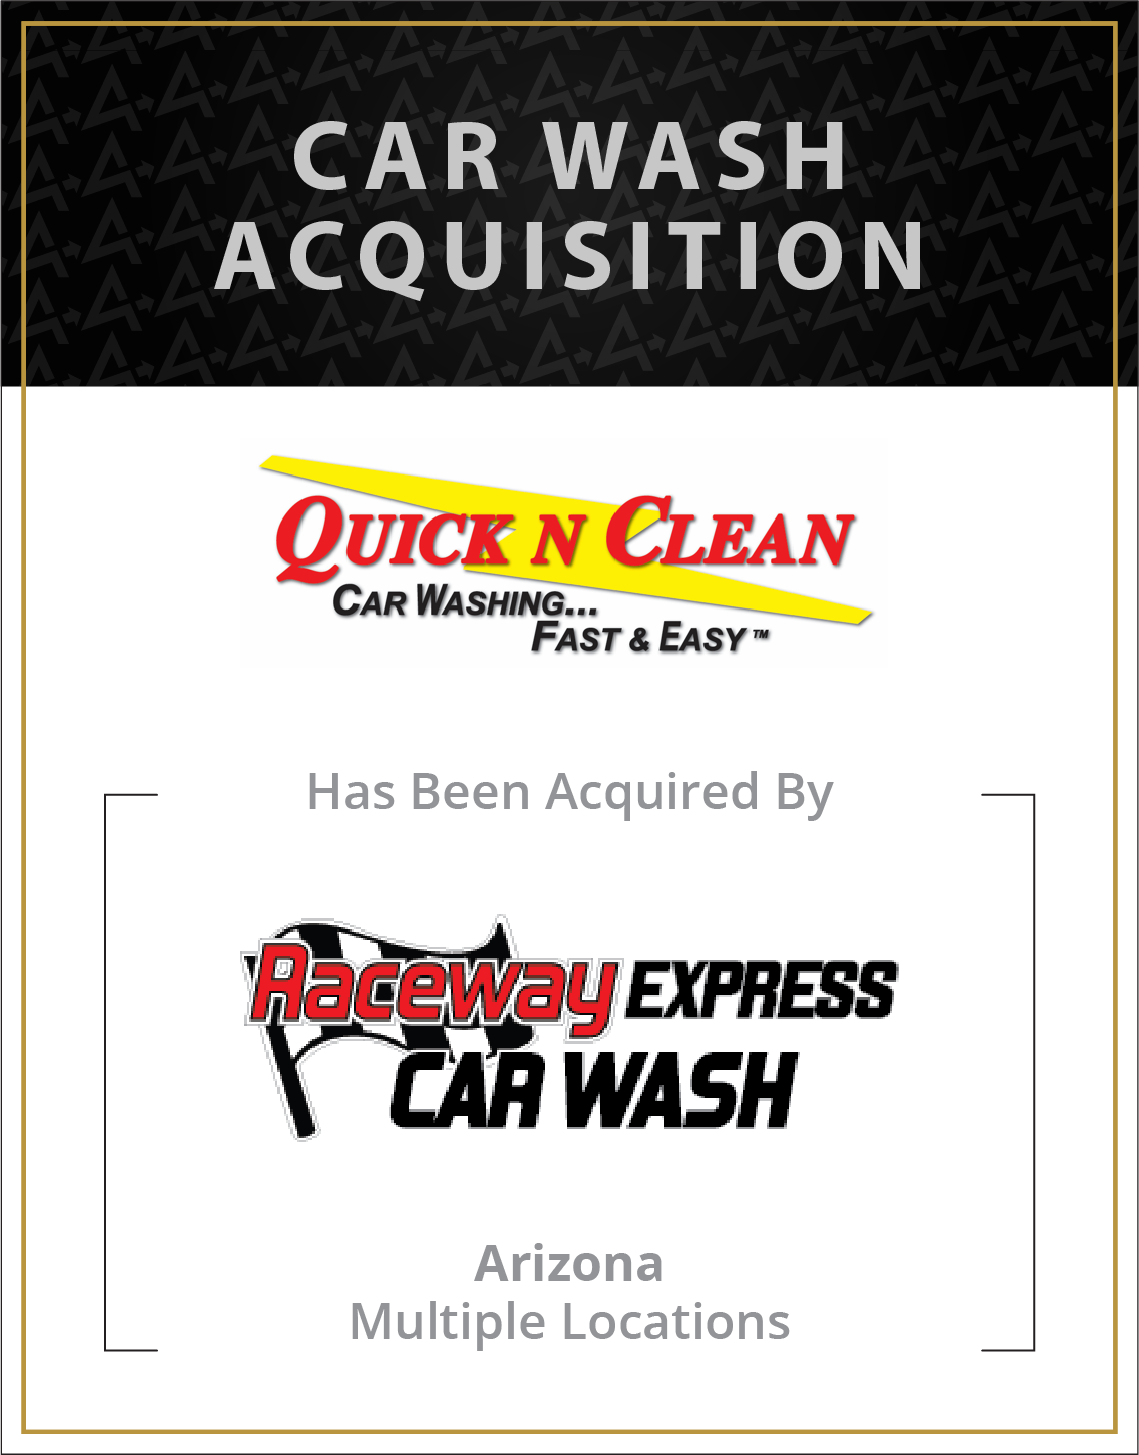 Quick N Clean has been acquired by Raceway Express Car Wash